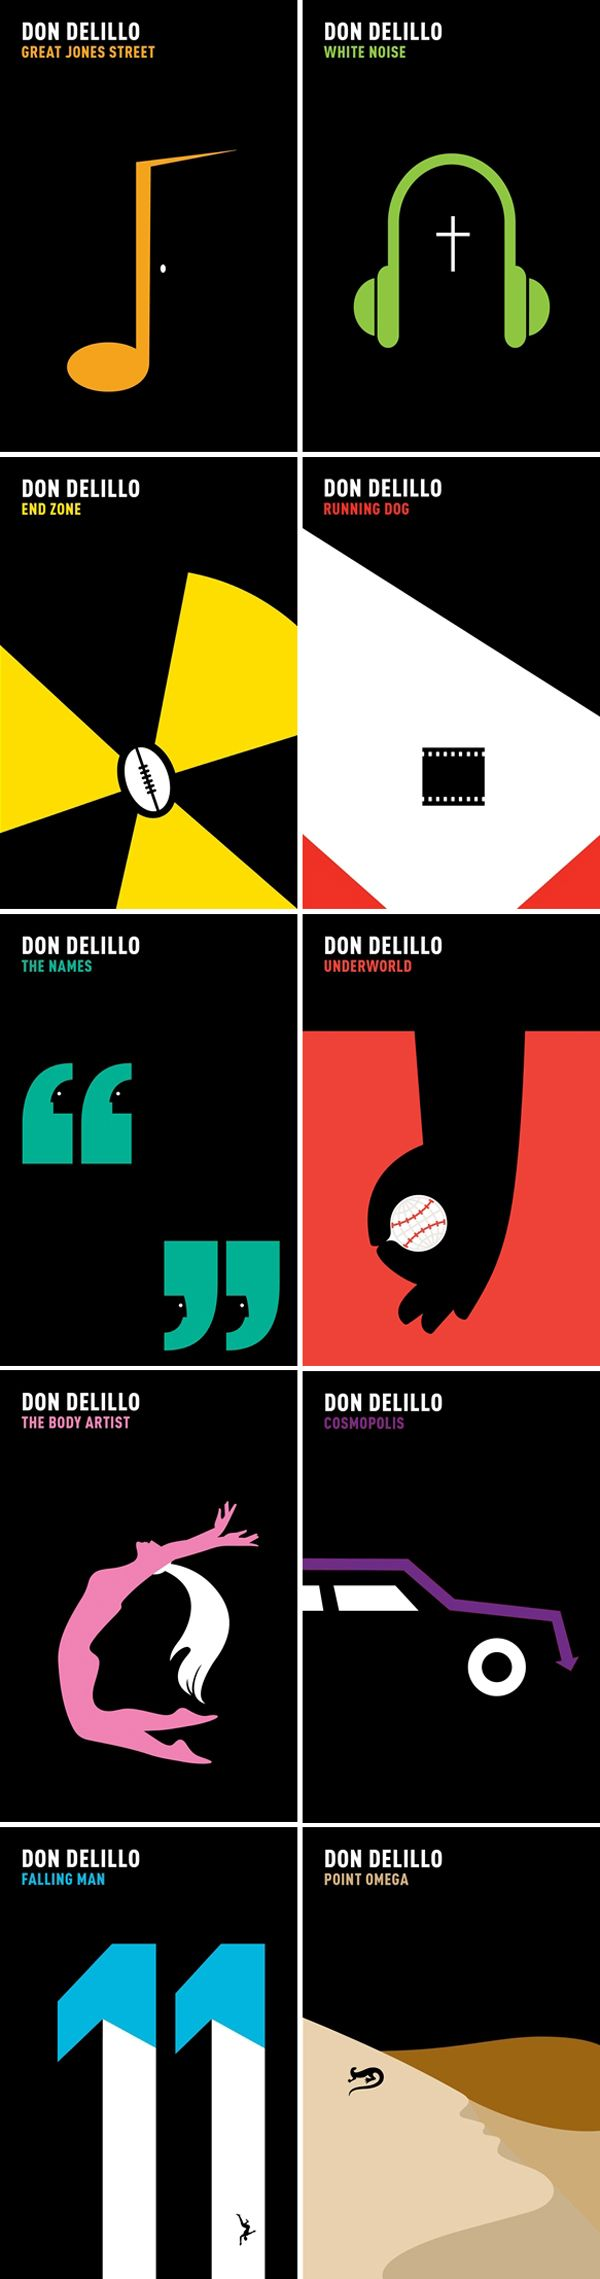 Don DeLillo's backlist, art directed and designed by It's Nice That with illustrations by Noma Bar. Published by Picador, 2011